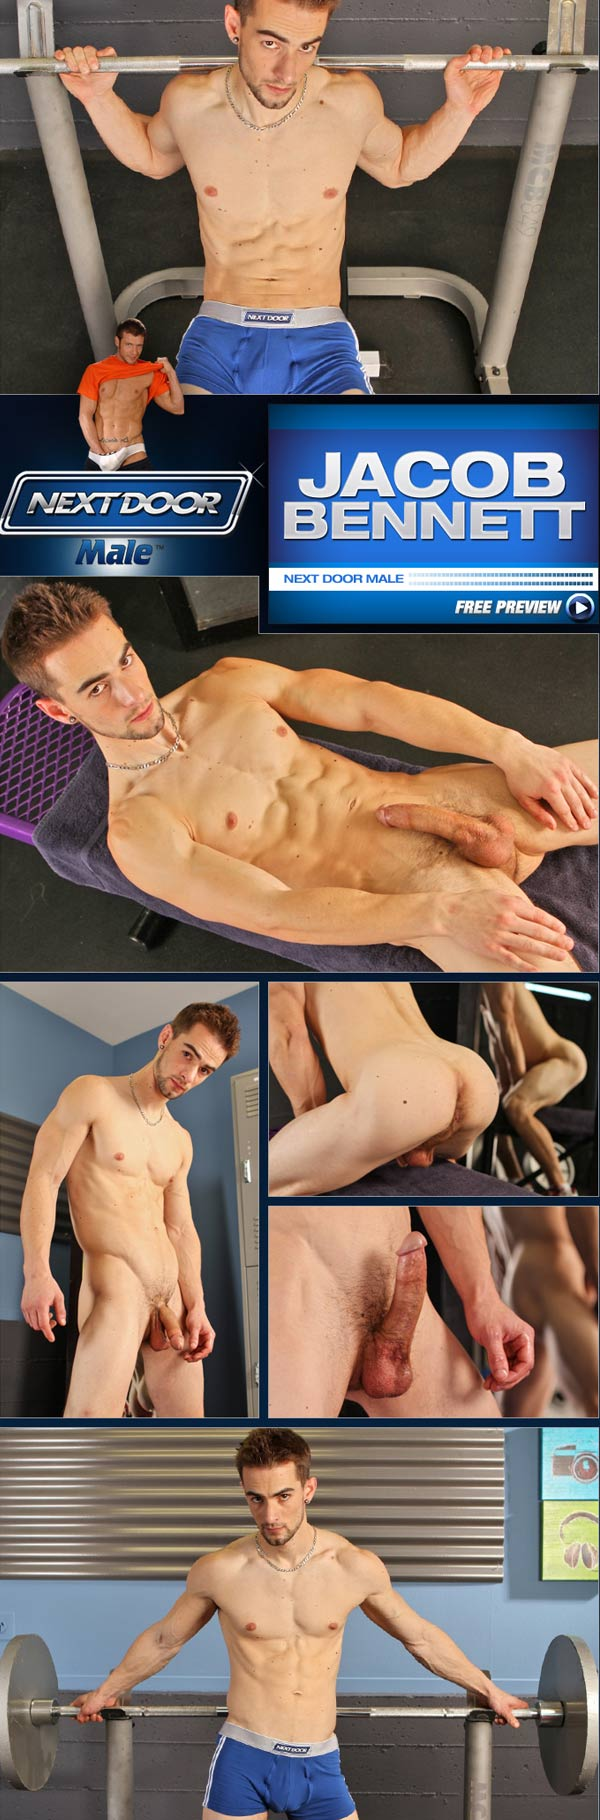 Jacob Bennett (At the Gym) at Next Door Male